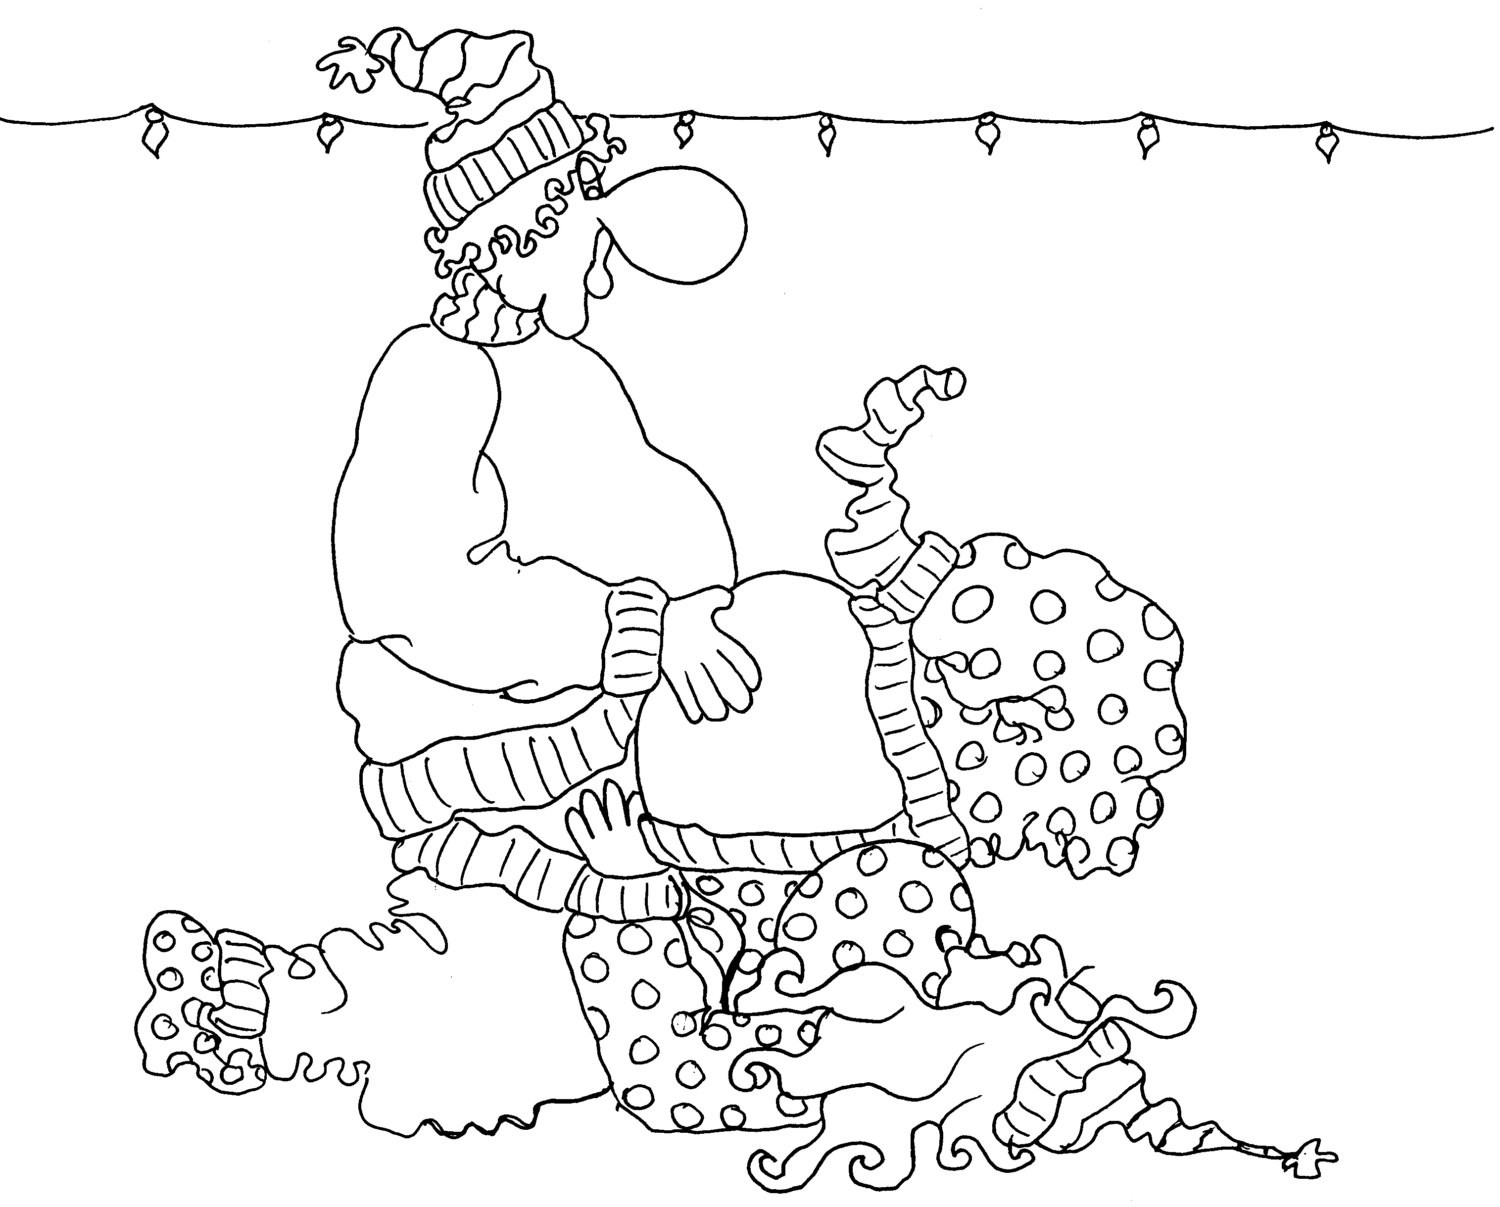 Kama Sutra Coloring Book  The G Force a Kama Sutra y Adult Coloring Page from the